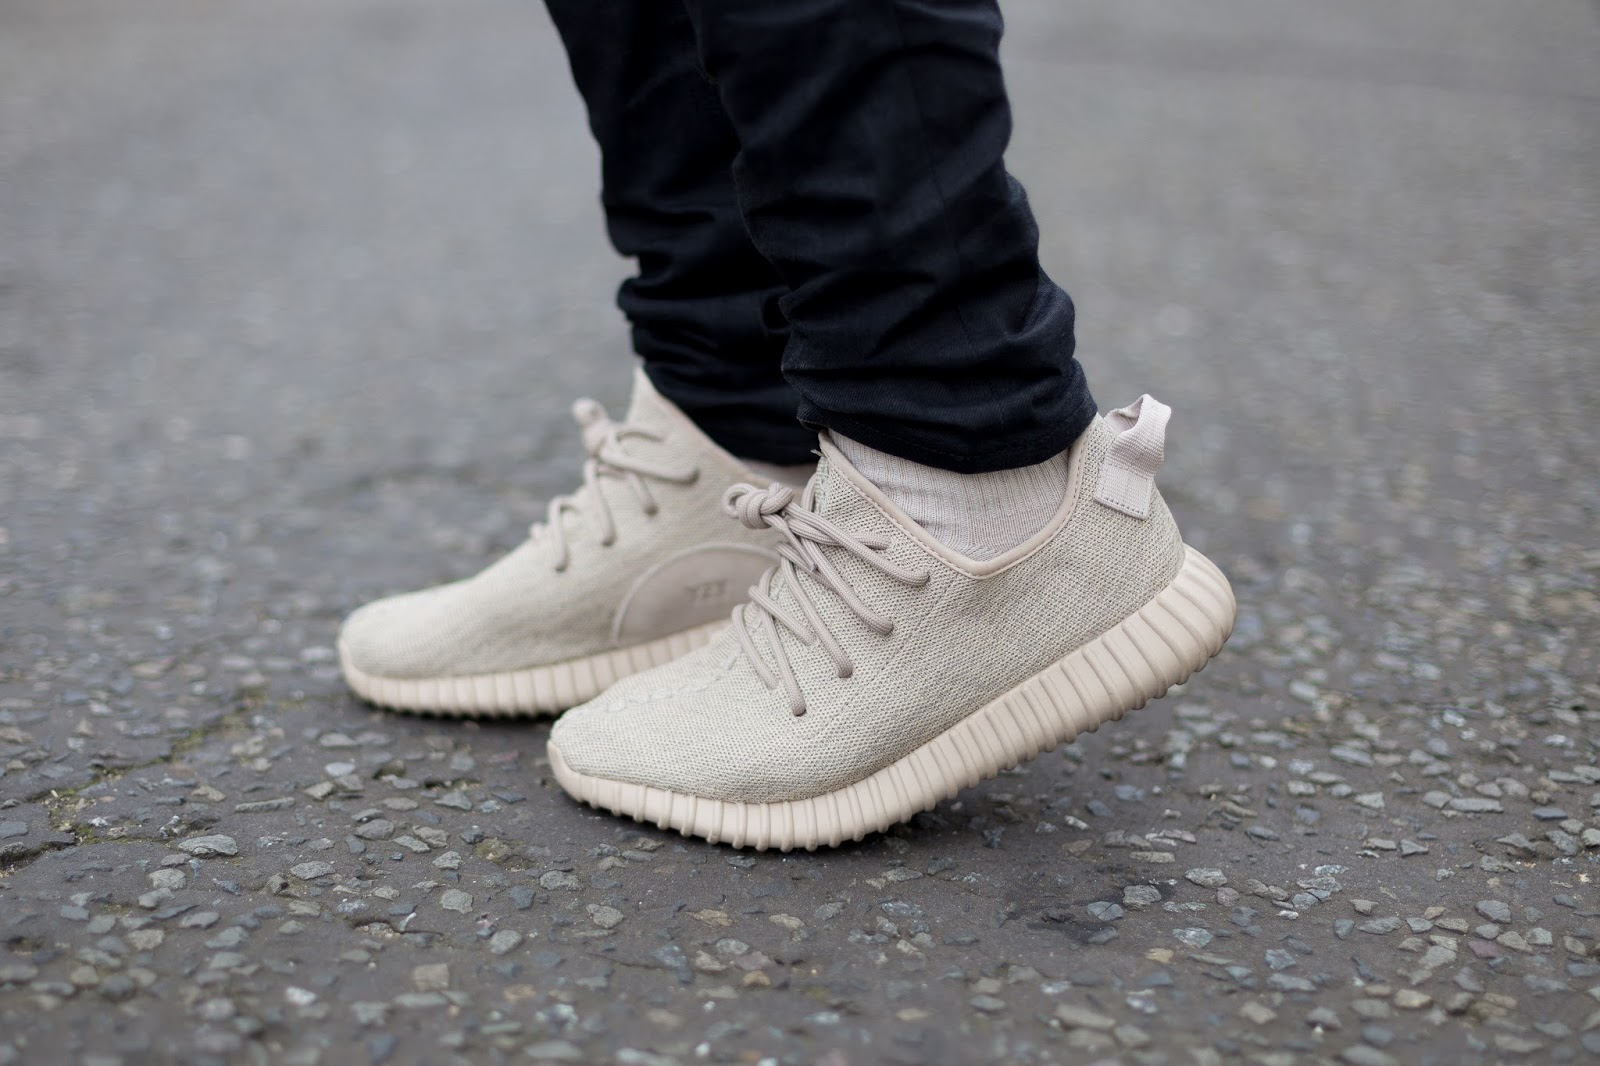 Yeezy Boost 350 Oxford Tan On Feet